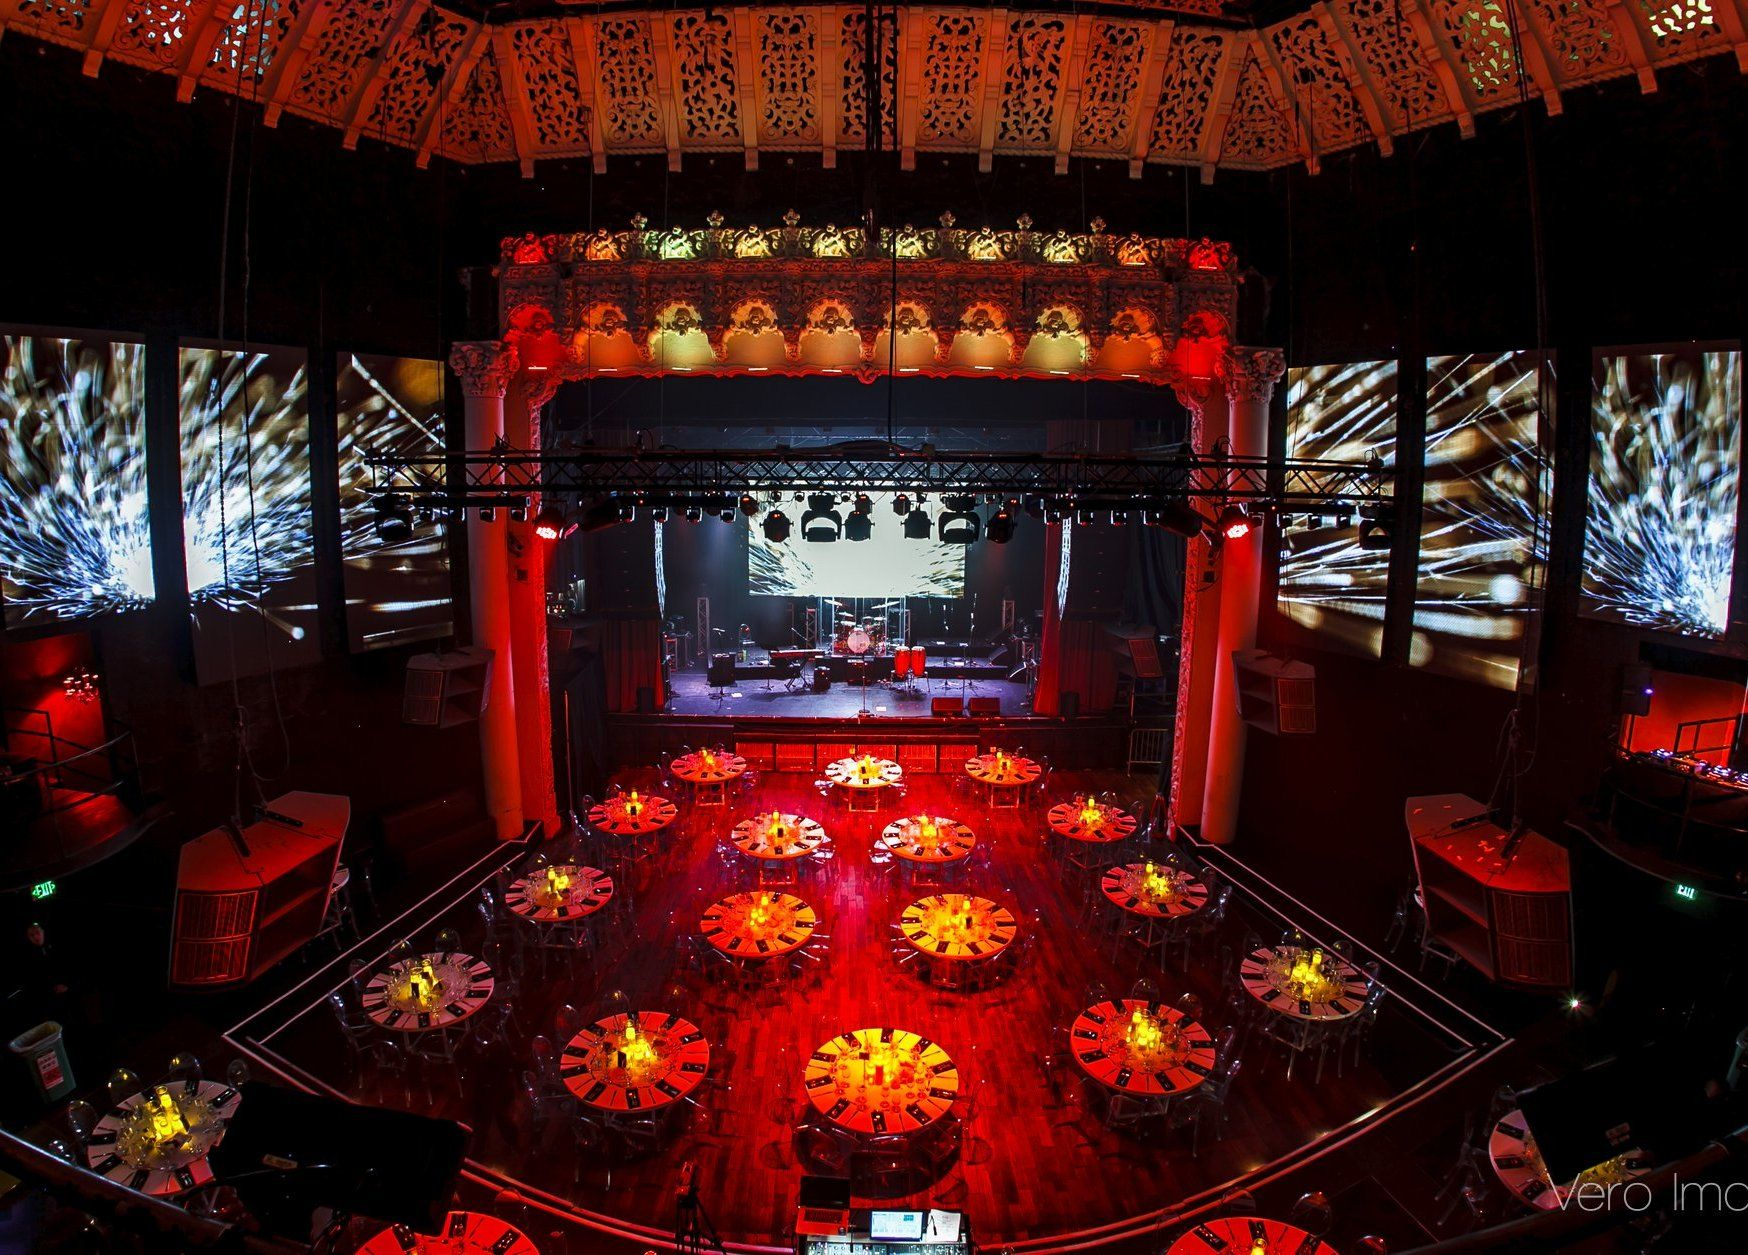 Historic night club and music venue with images los